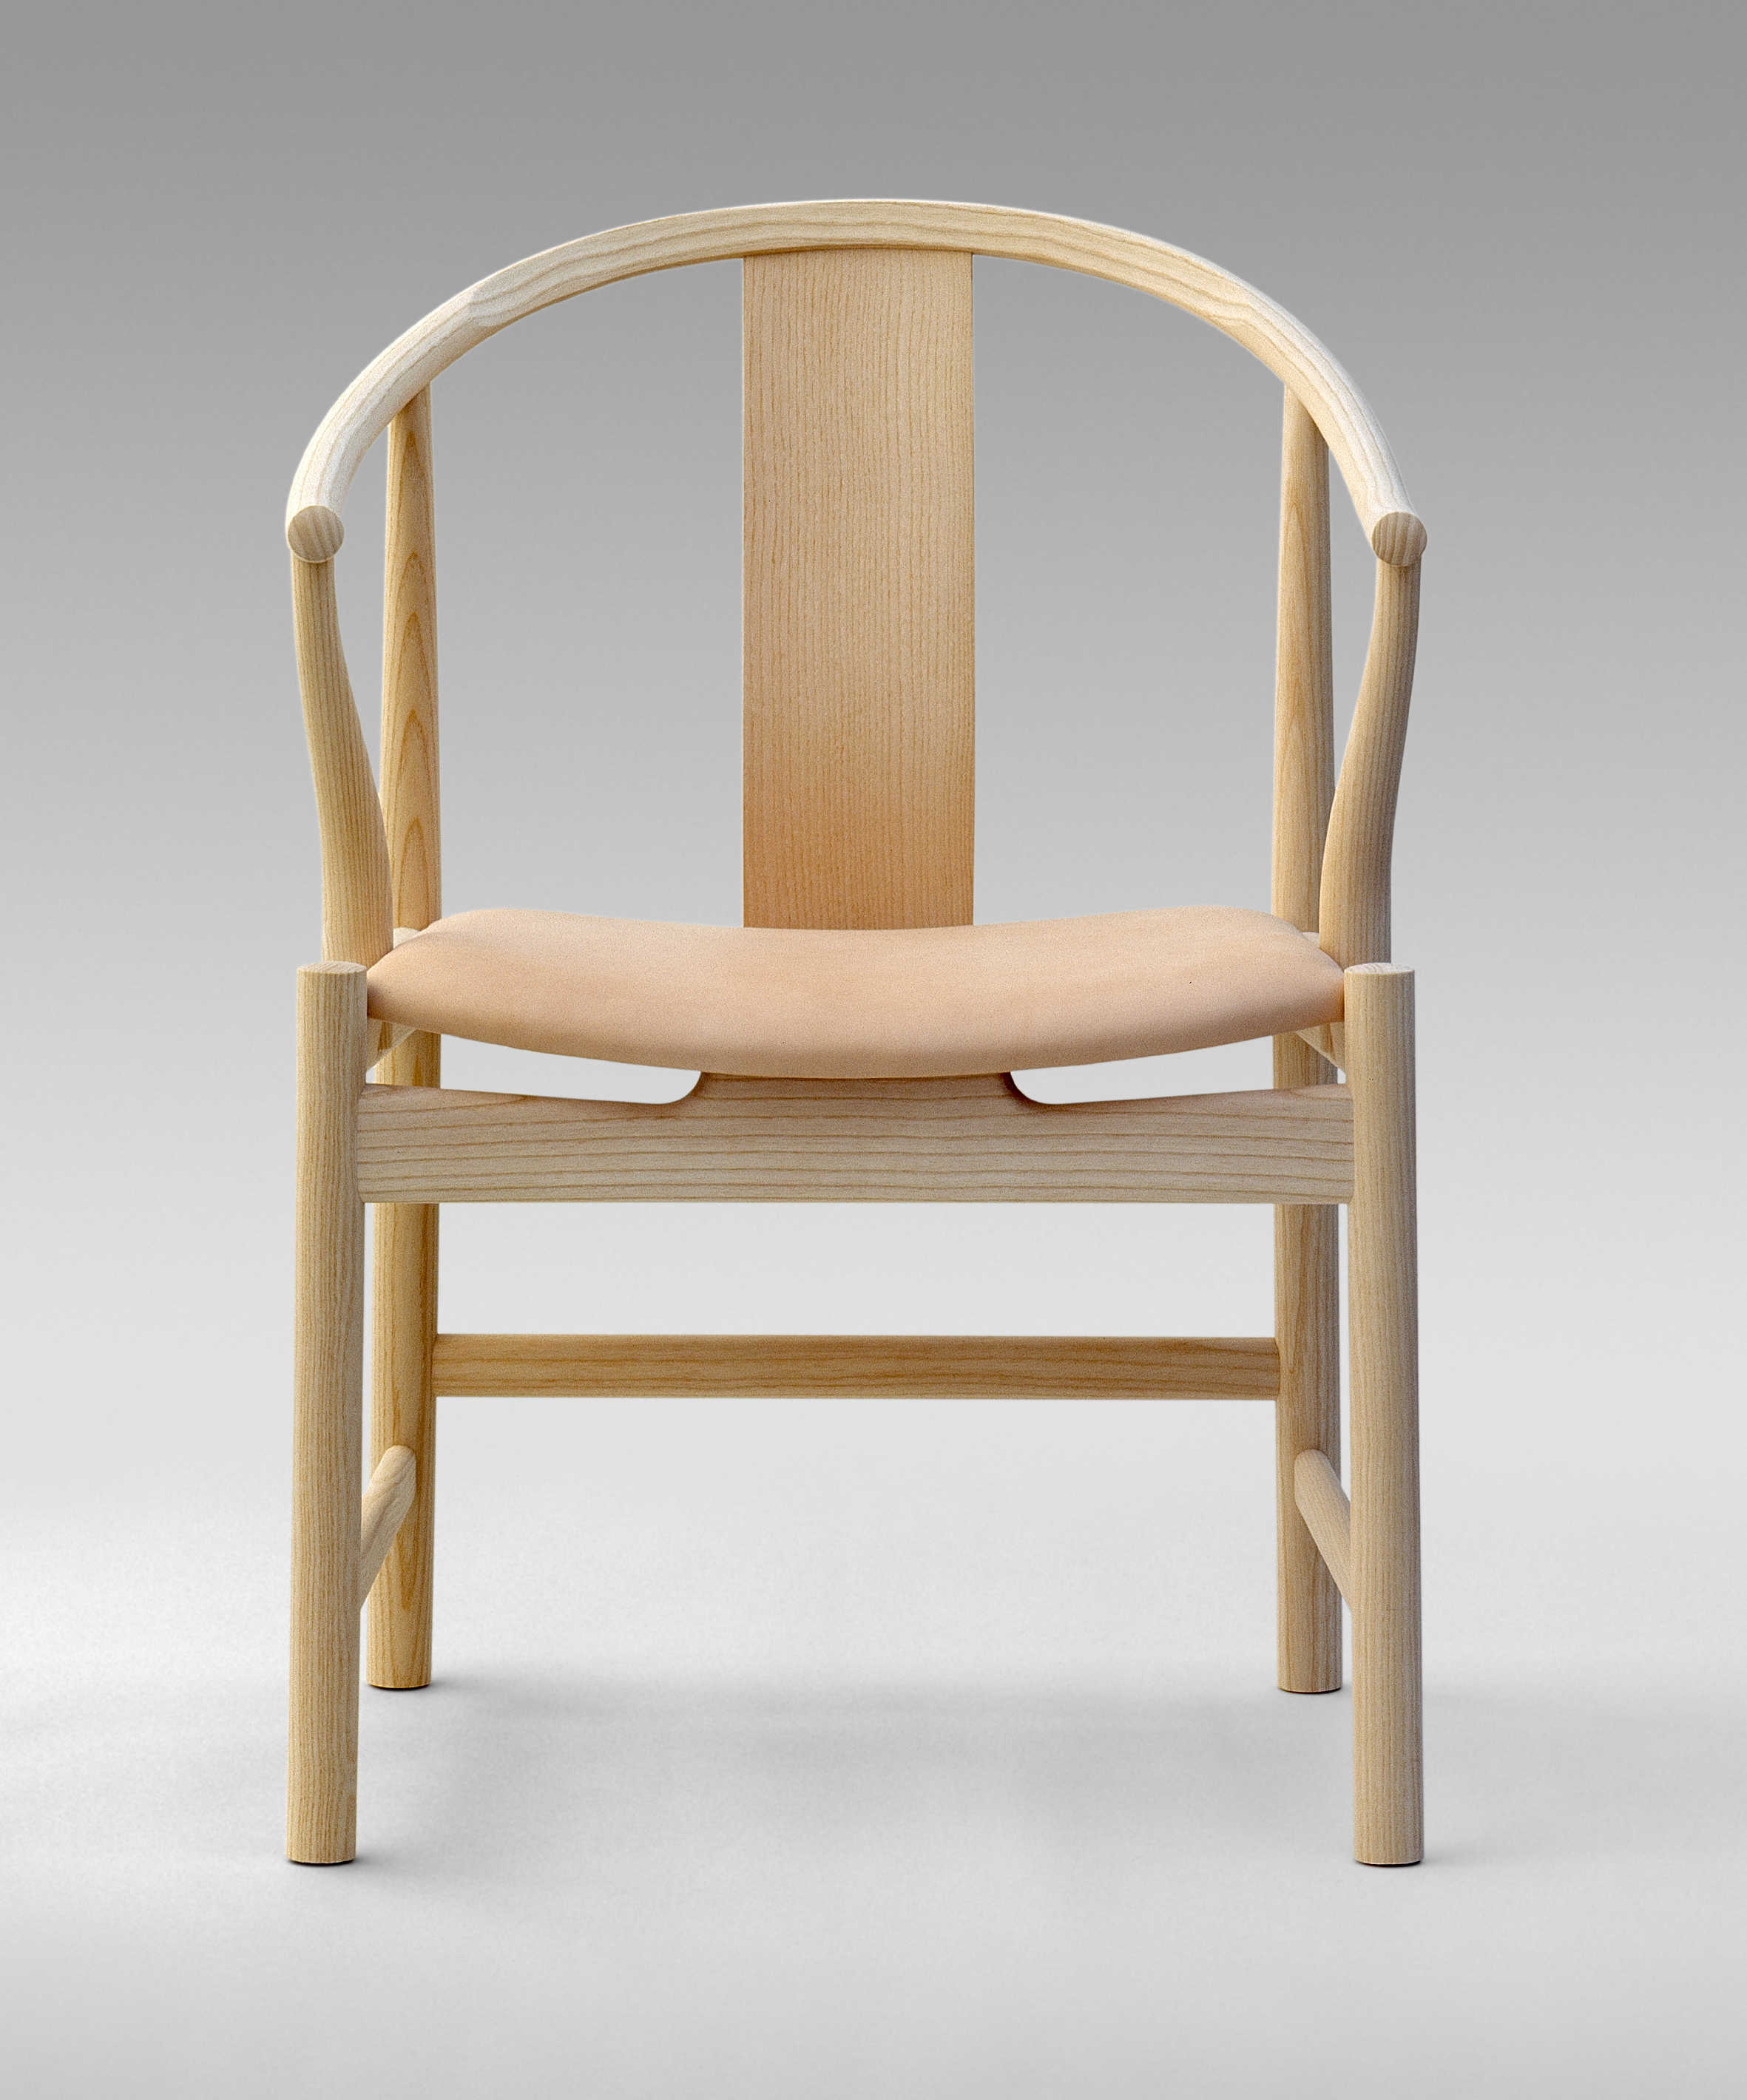 Chinese Chair Pp 56 Pp 66 The Chinese Chair By Hans Wegner